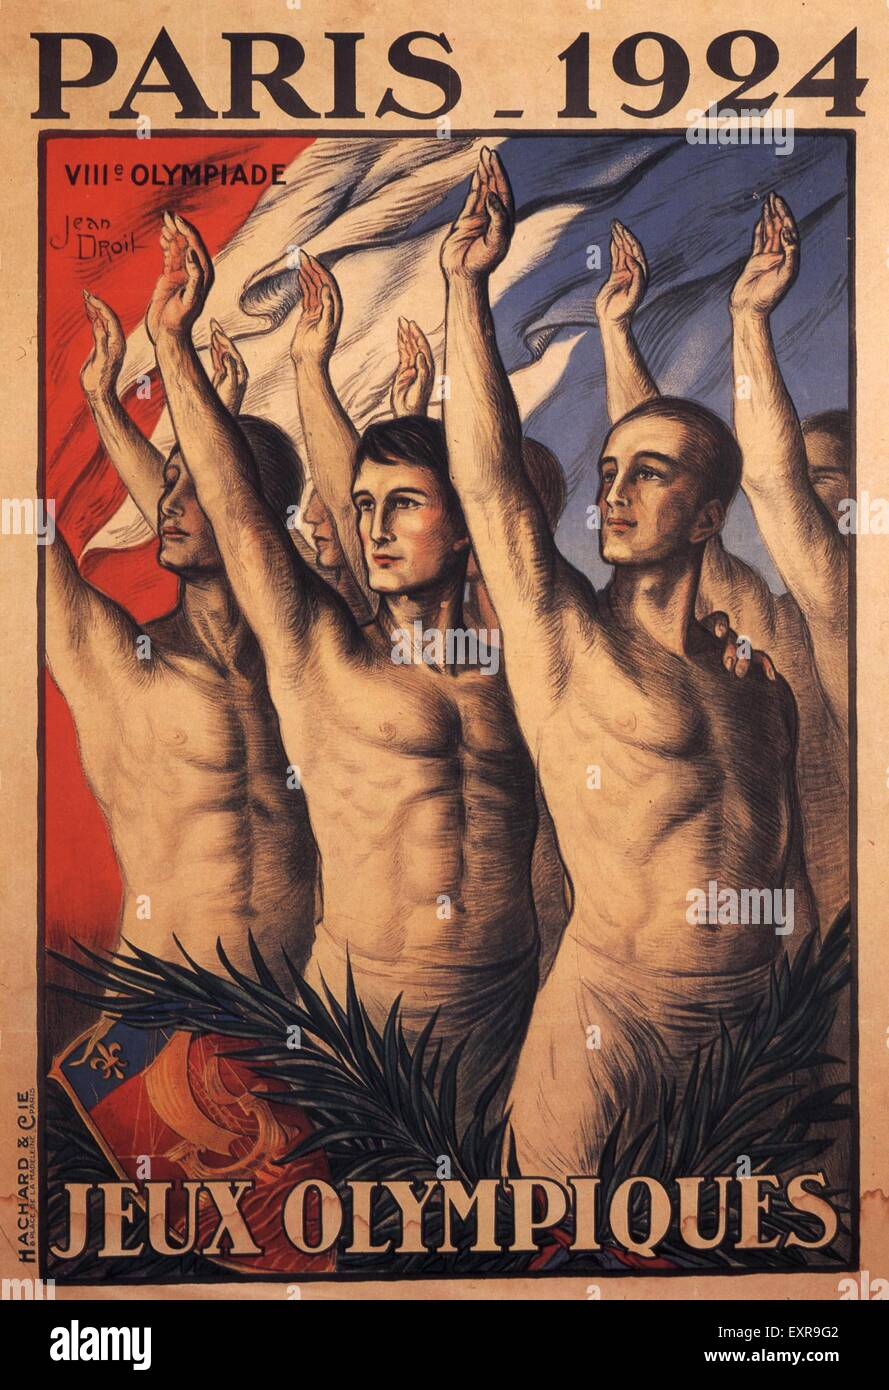 1920s France Olympic Games Poster - Stock Image